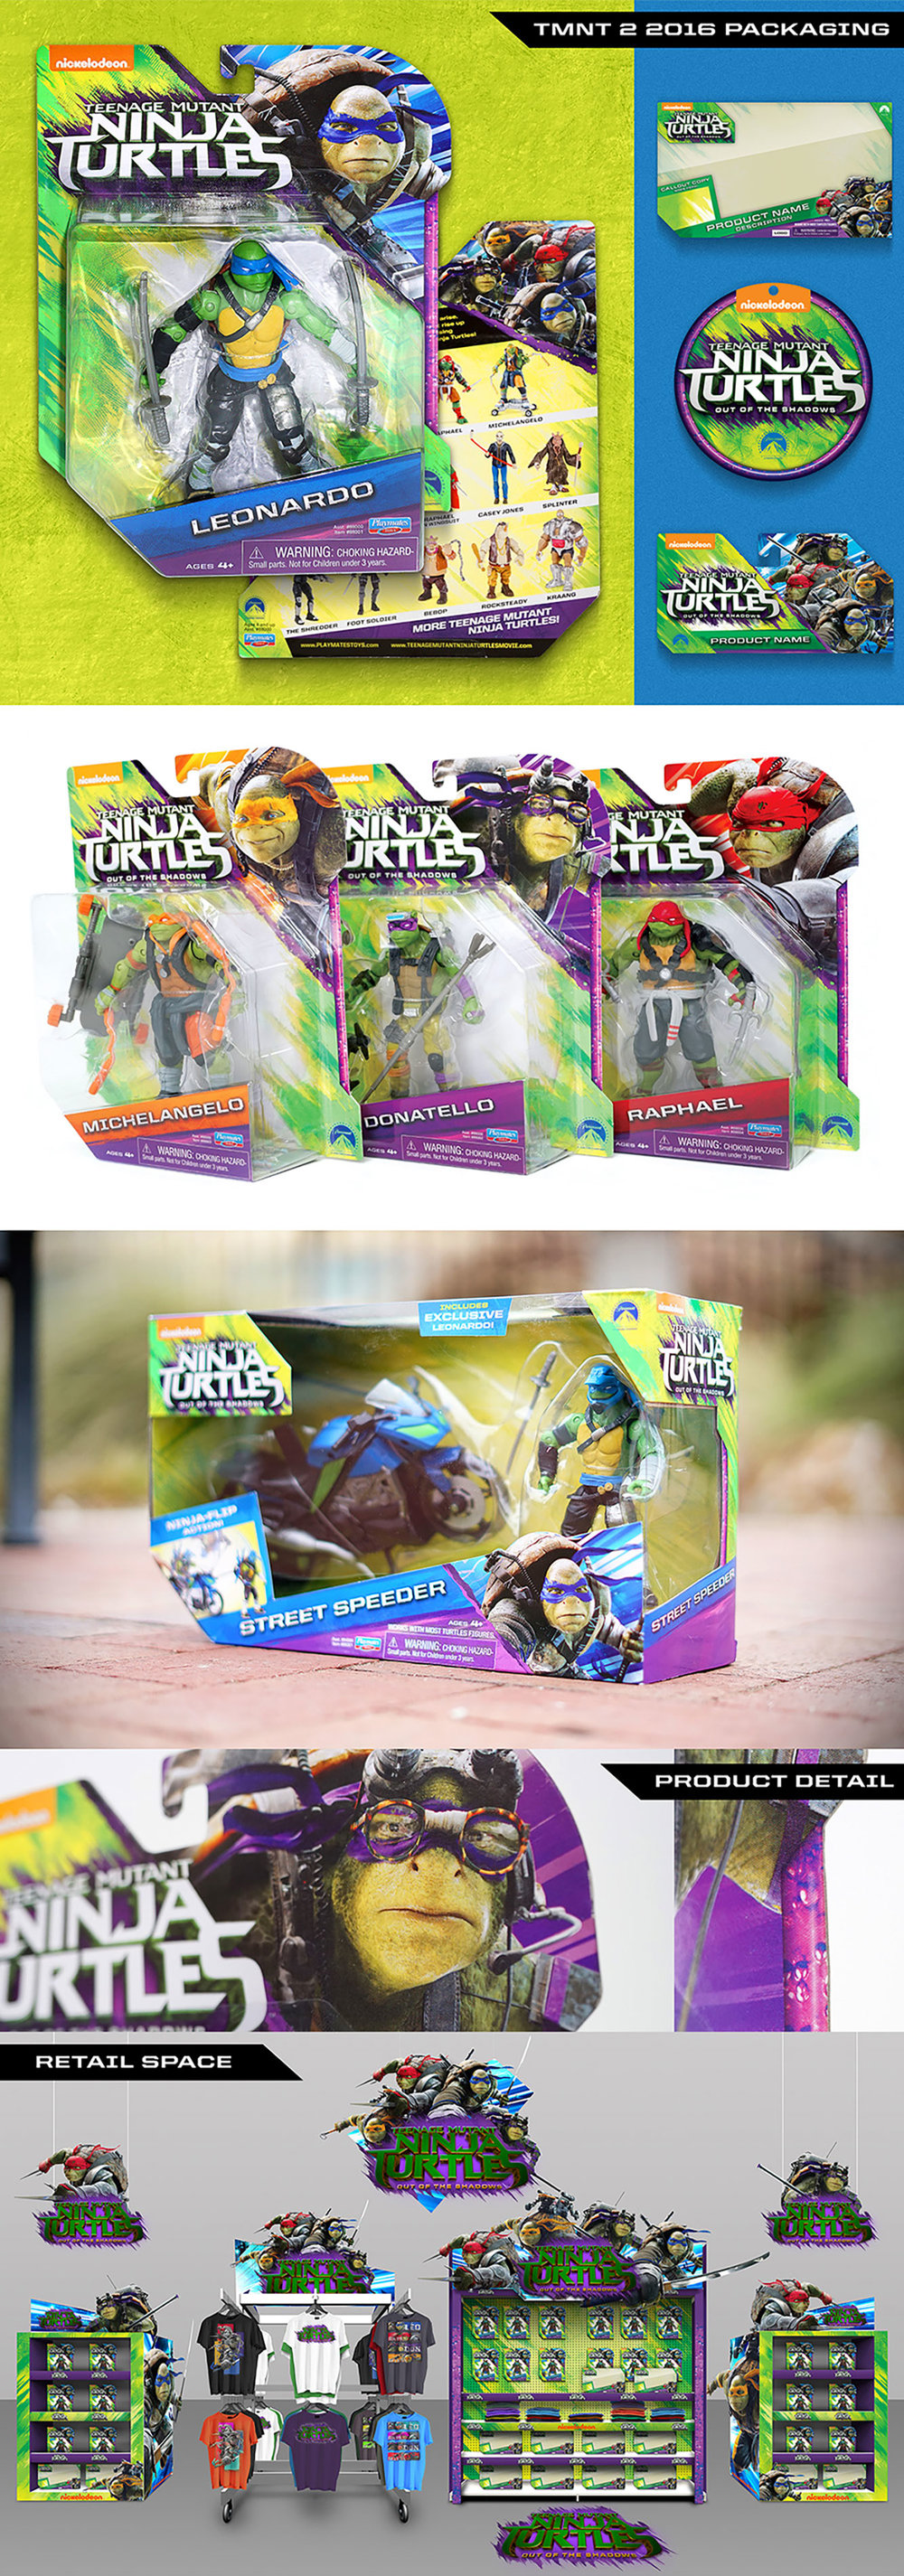 TMNT2_Packaging_WEB.jpg